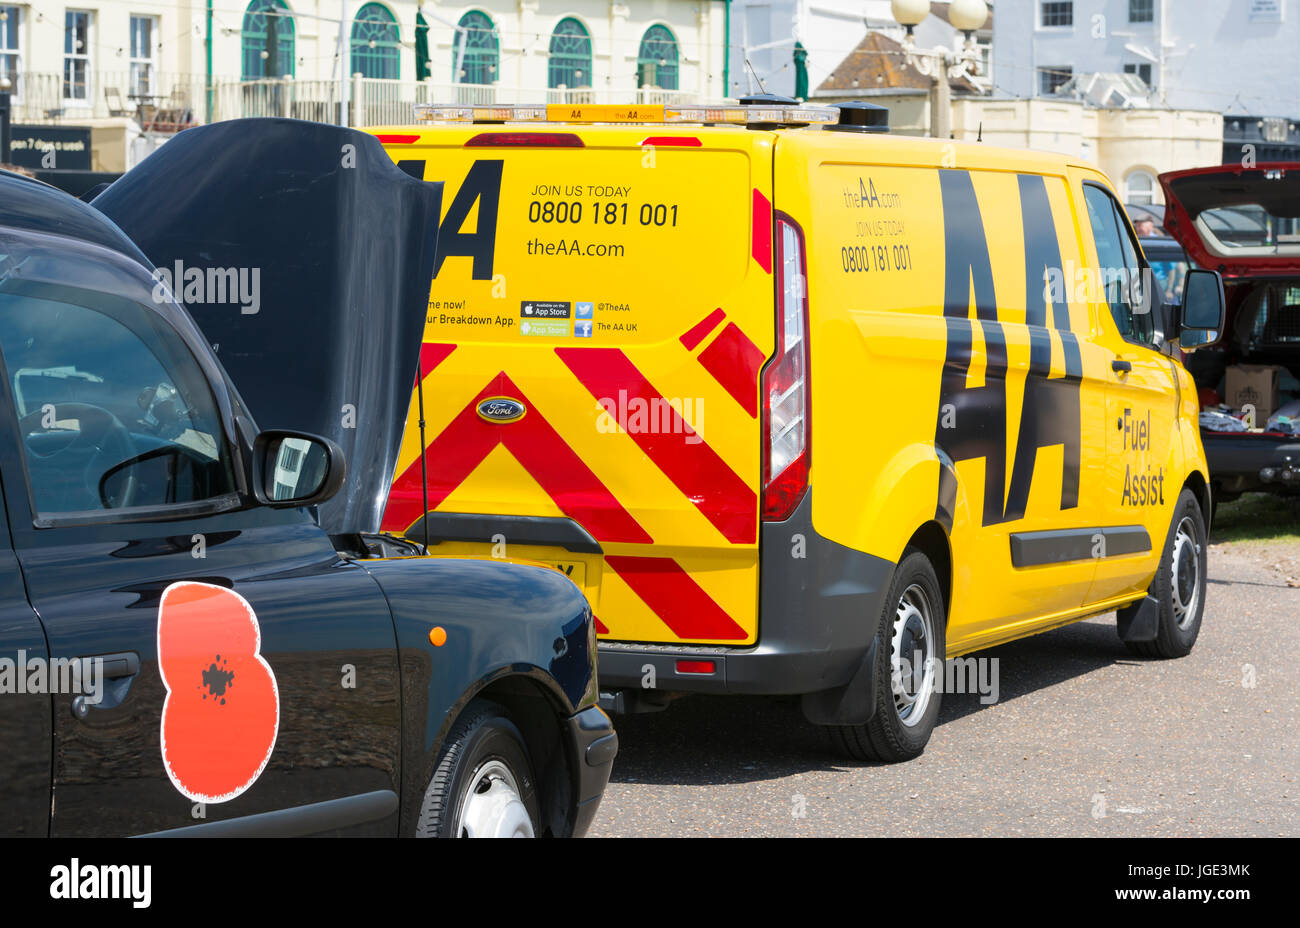 Broken down London Black cab with bonnet up and an AA van on scene. Stock Photo